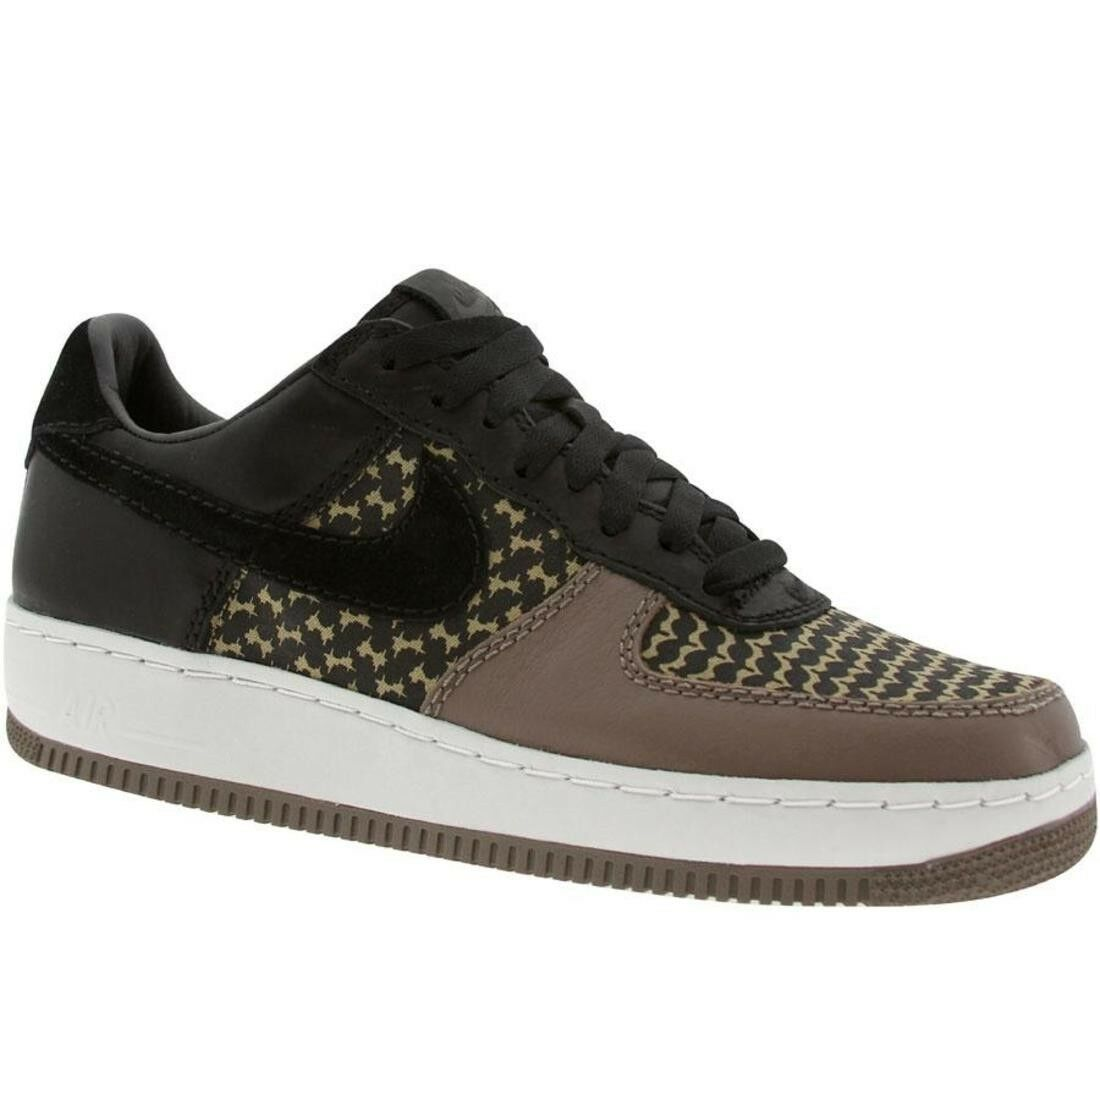 313213-032 Nike Air Force 1 Low IO Insideout Premium Undefeated Edition Black Gr